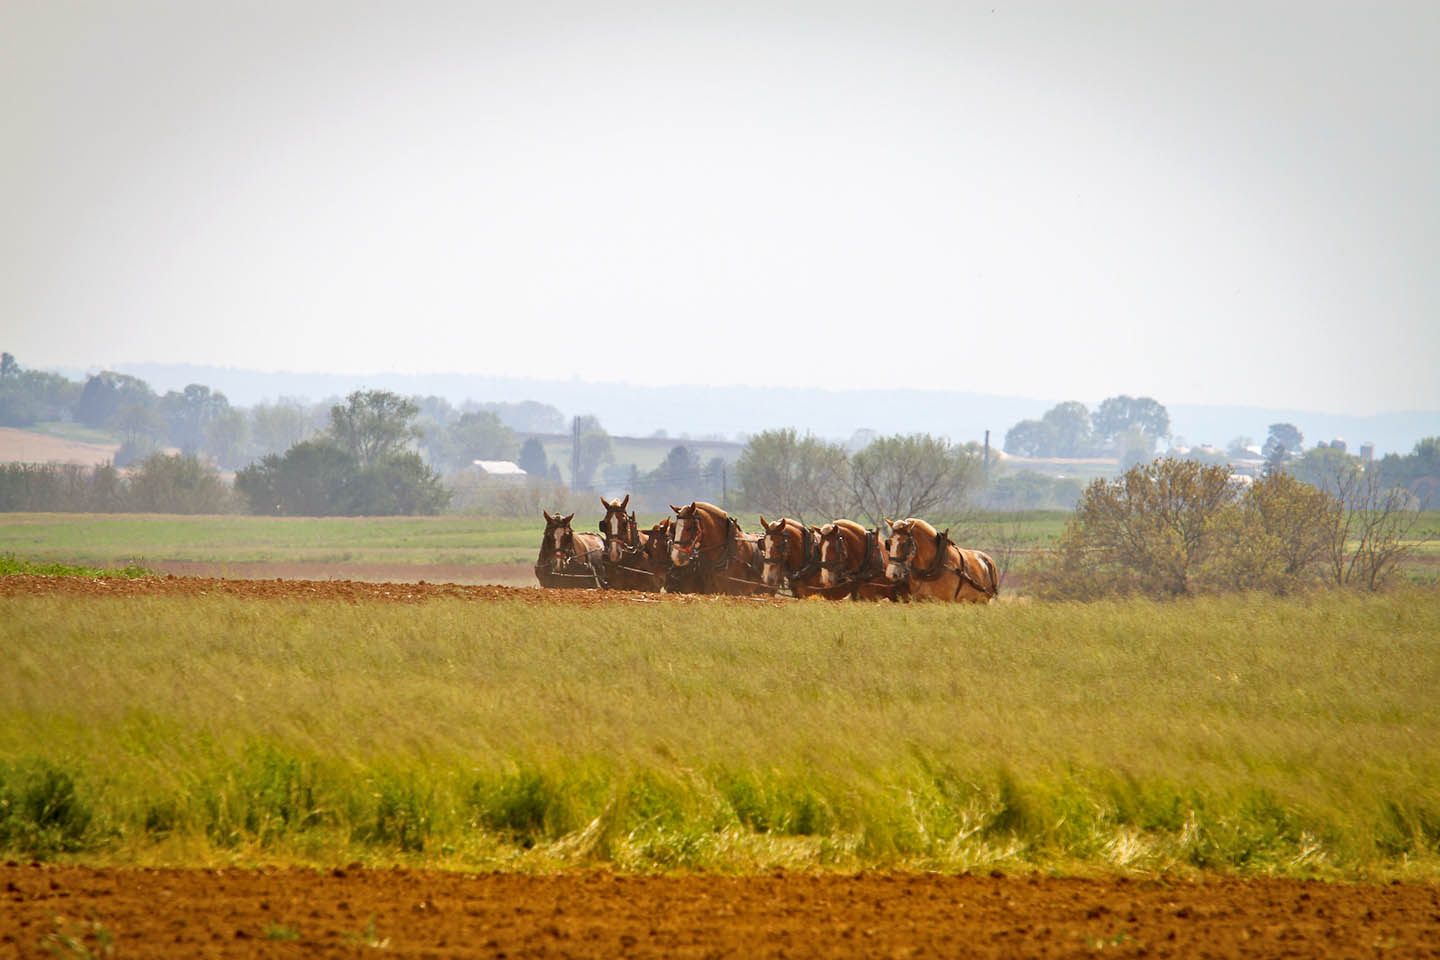 farming_with-Horses_by-Terri_Aigner